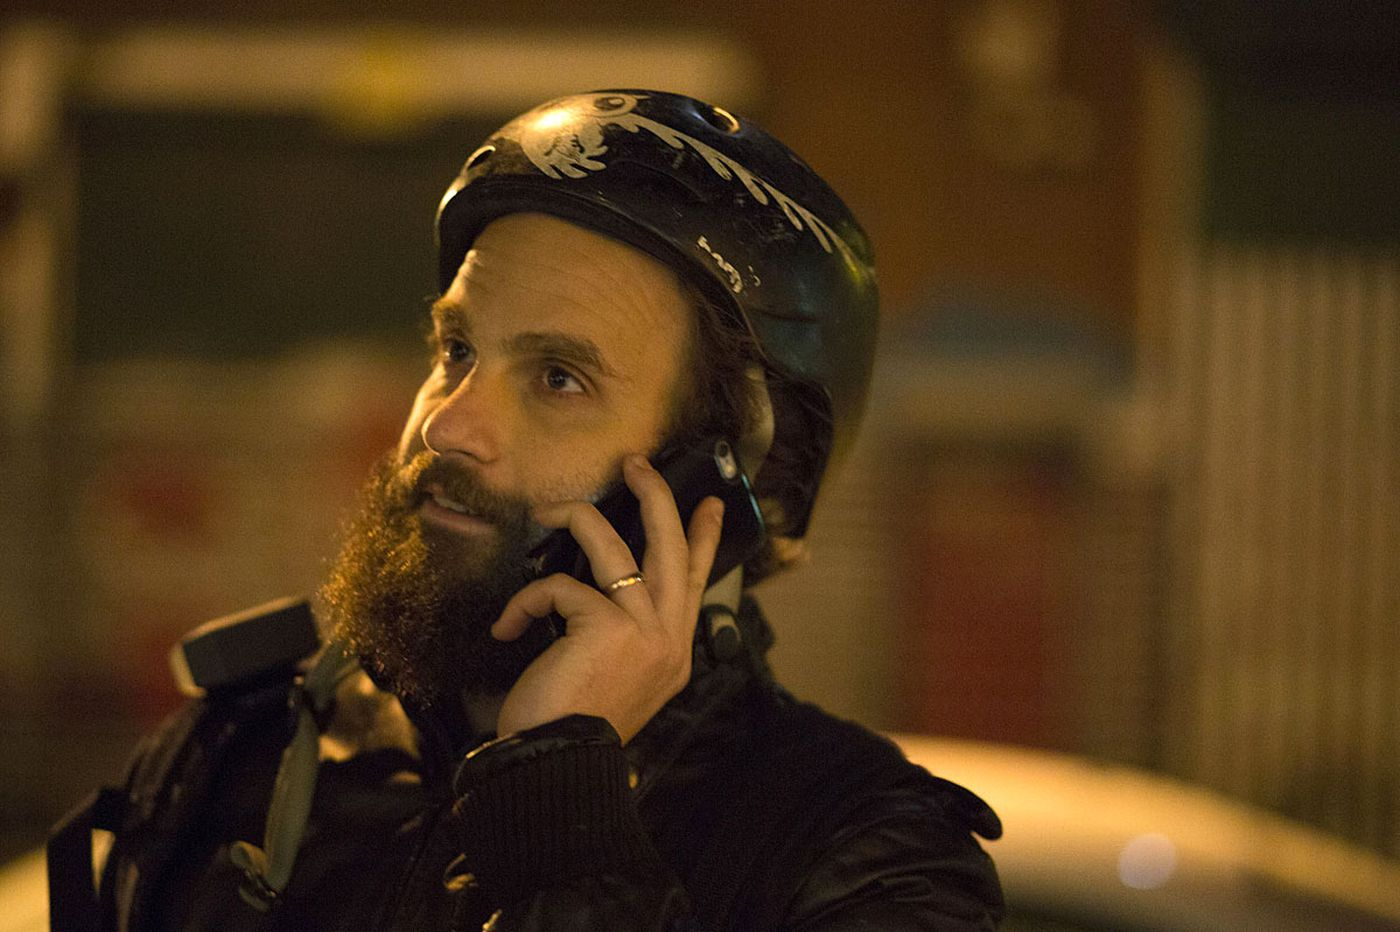 'High Maintenance' is a smarter kind of weed comedy